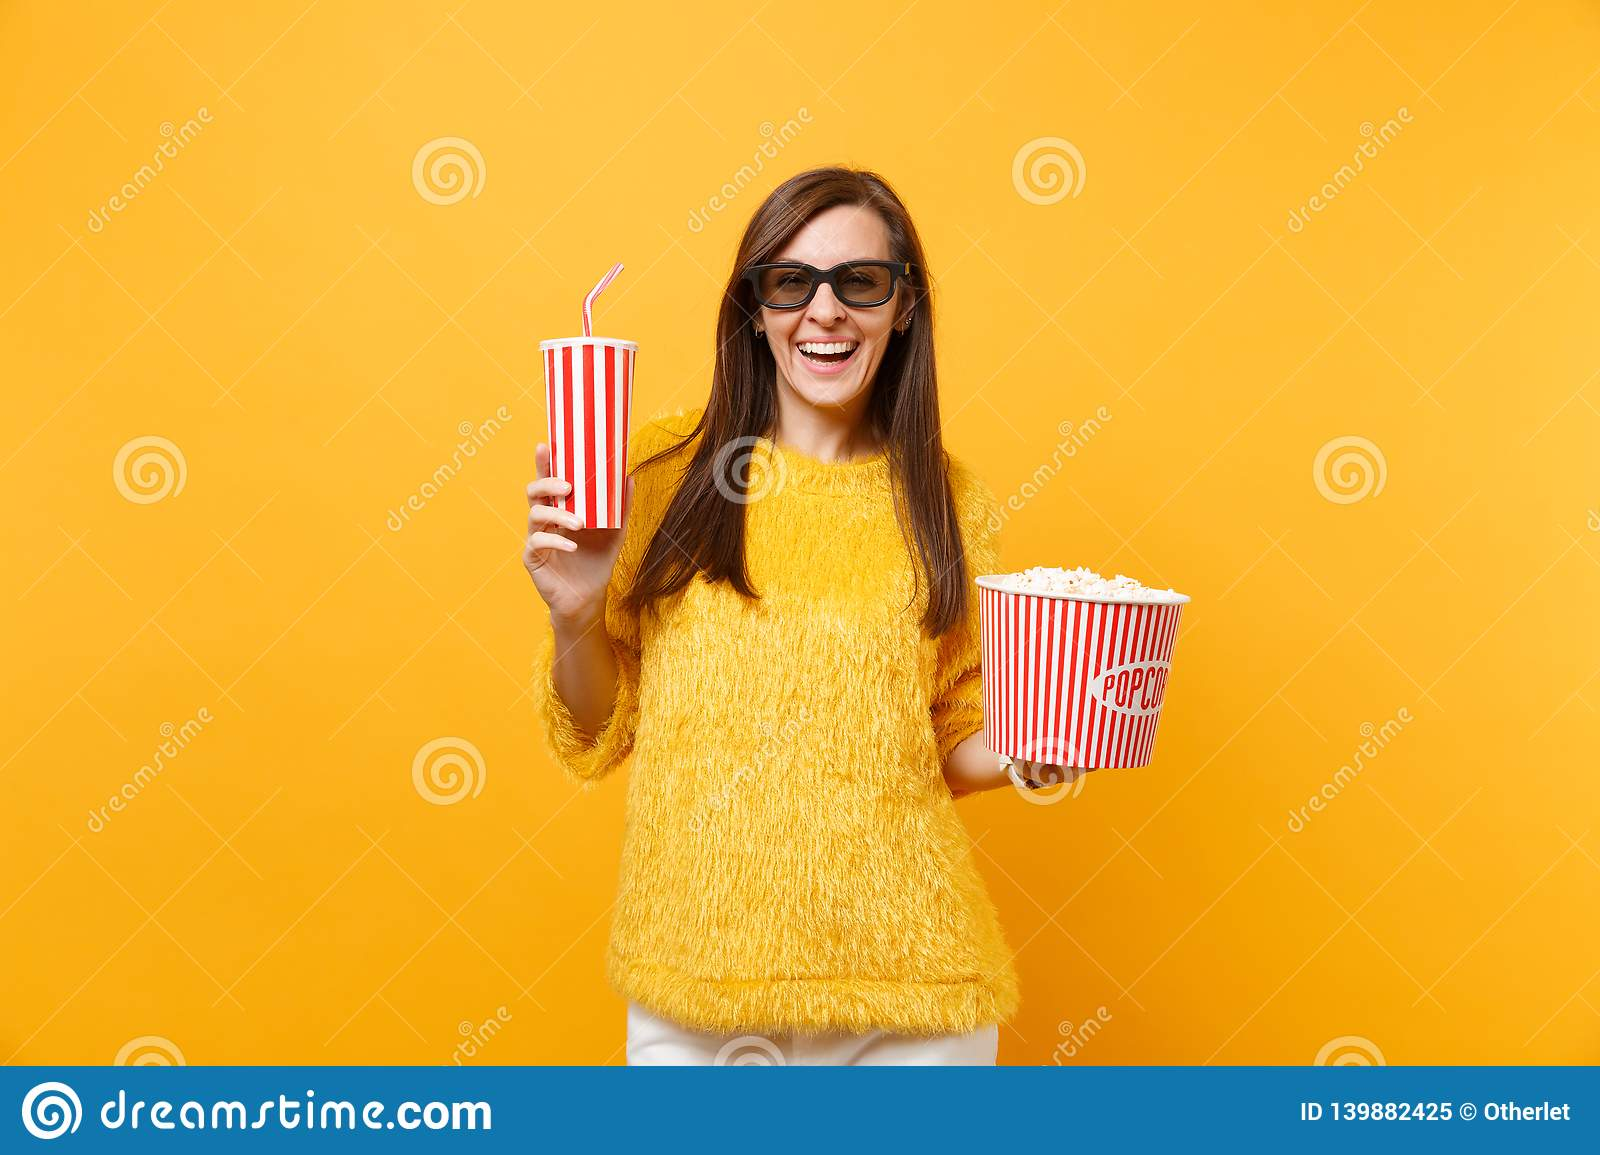 Smiling young woman in 3d imax glasses watching movie film, holding bucket of popcorn, plastic cup of cola or soda